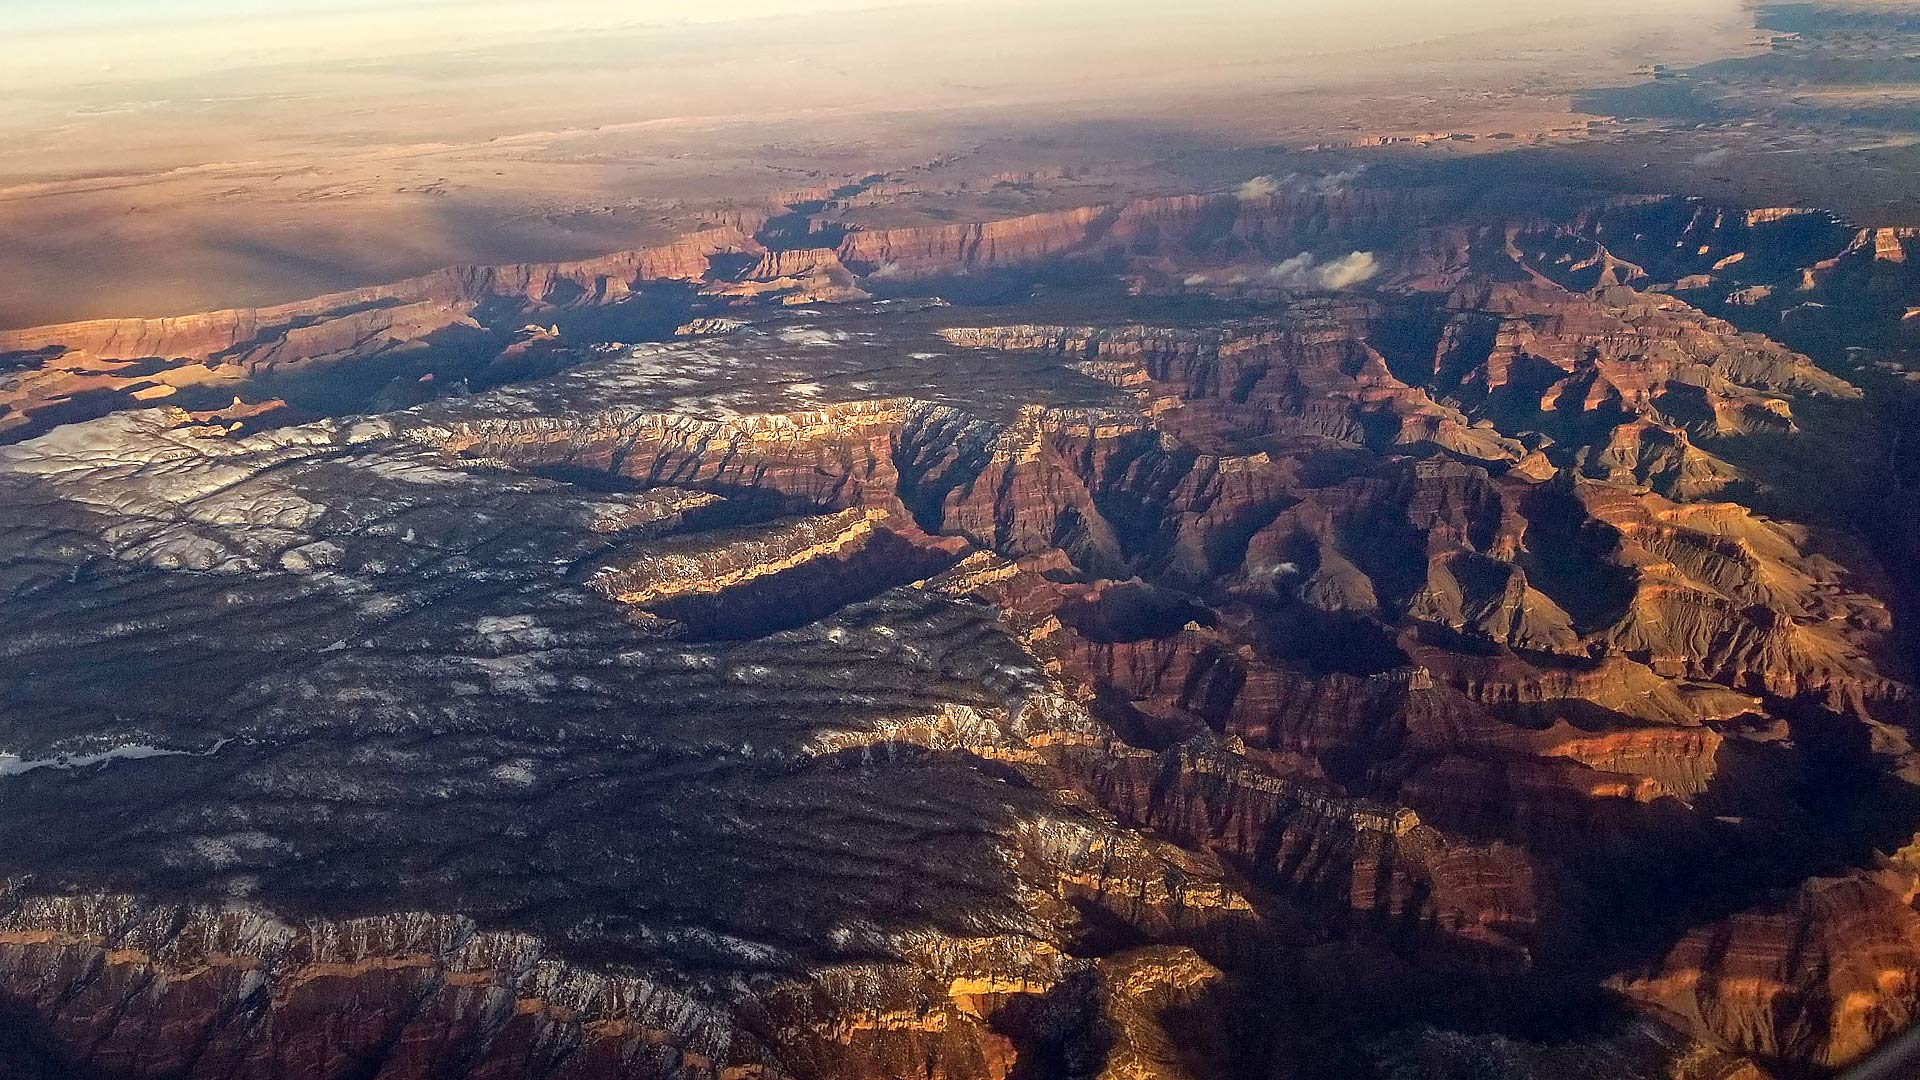 An aerial view of the Grand Canyon.